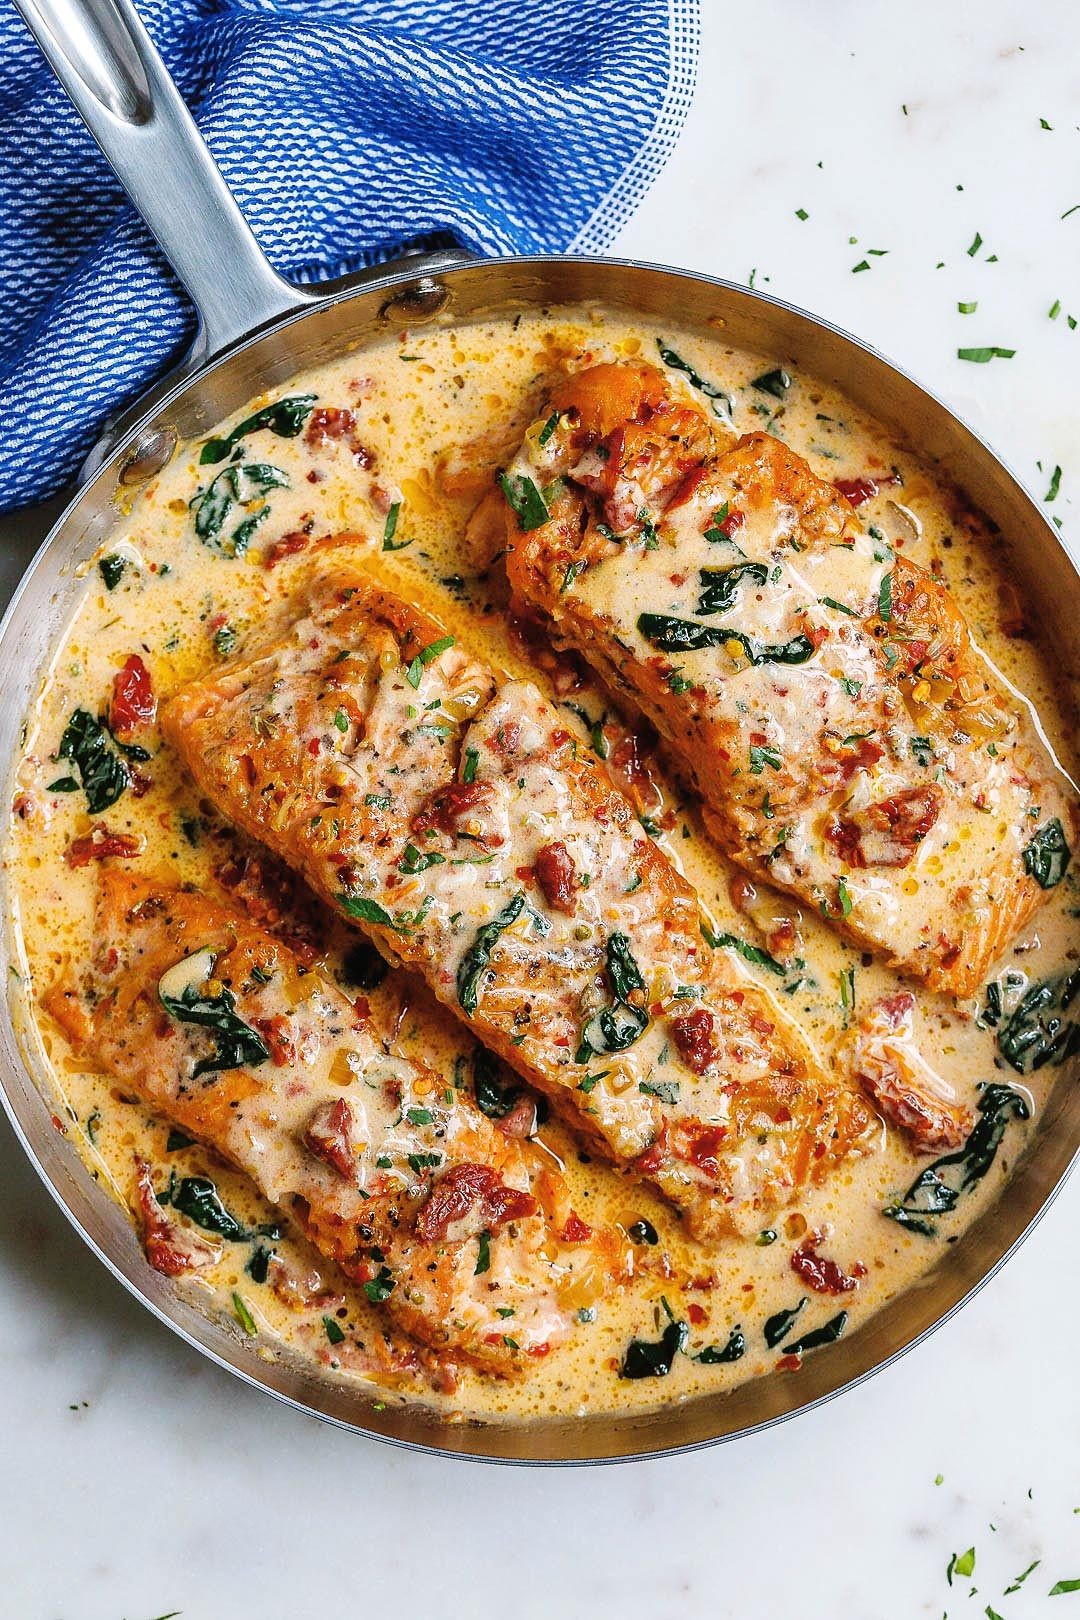 Creamy Garlic Tuscan Salmon With Spinach and Sun-Dried Tomatoes